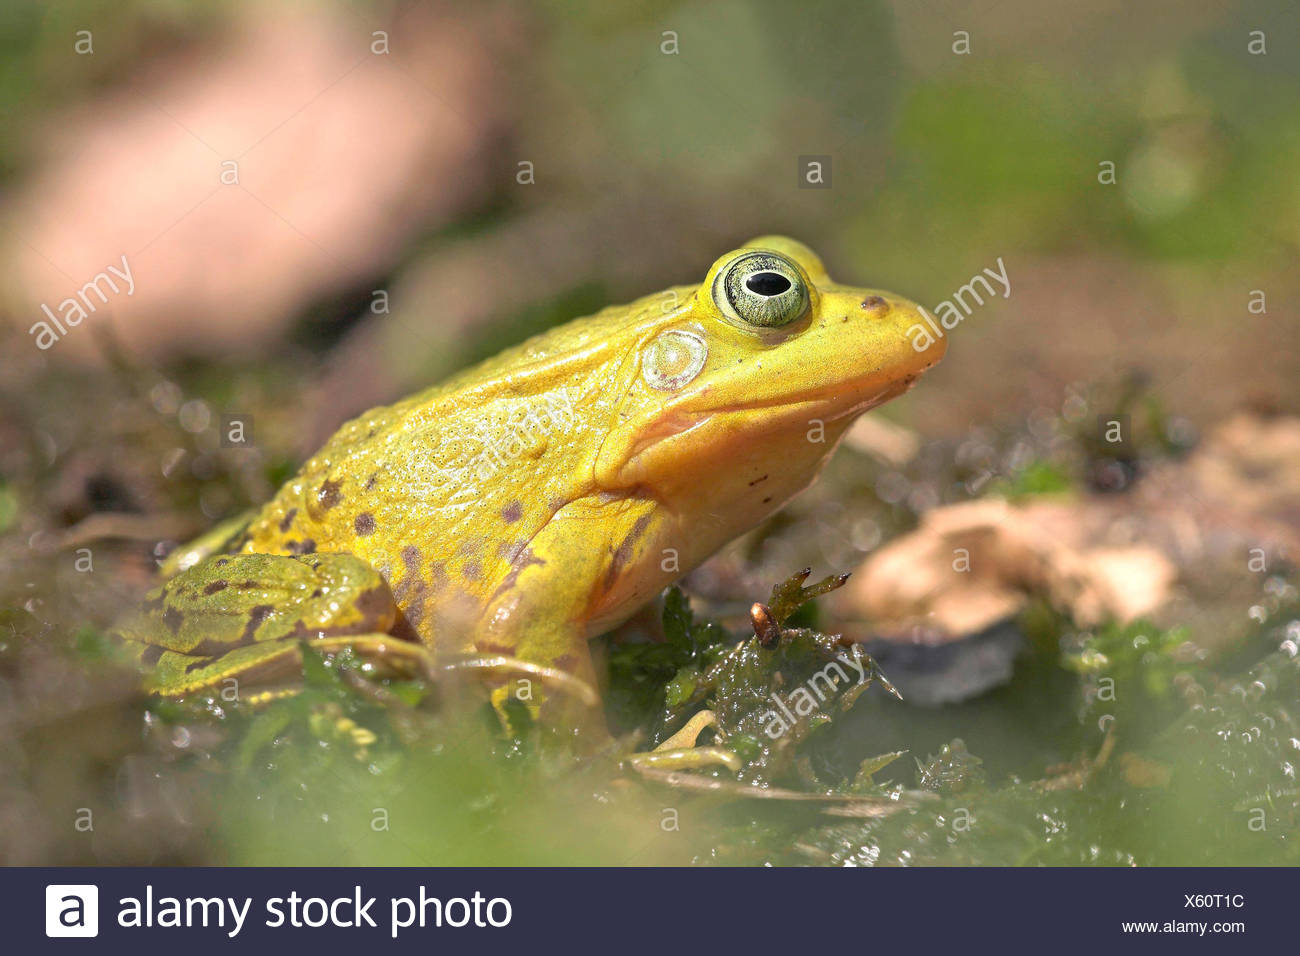 photo of a bright green male pool frog during breeding season - Stock Image